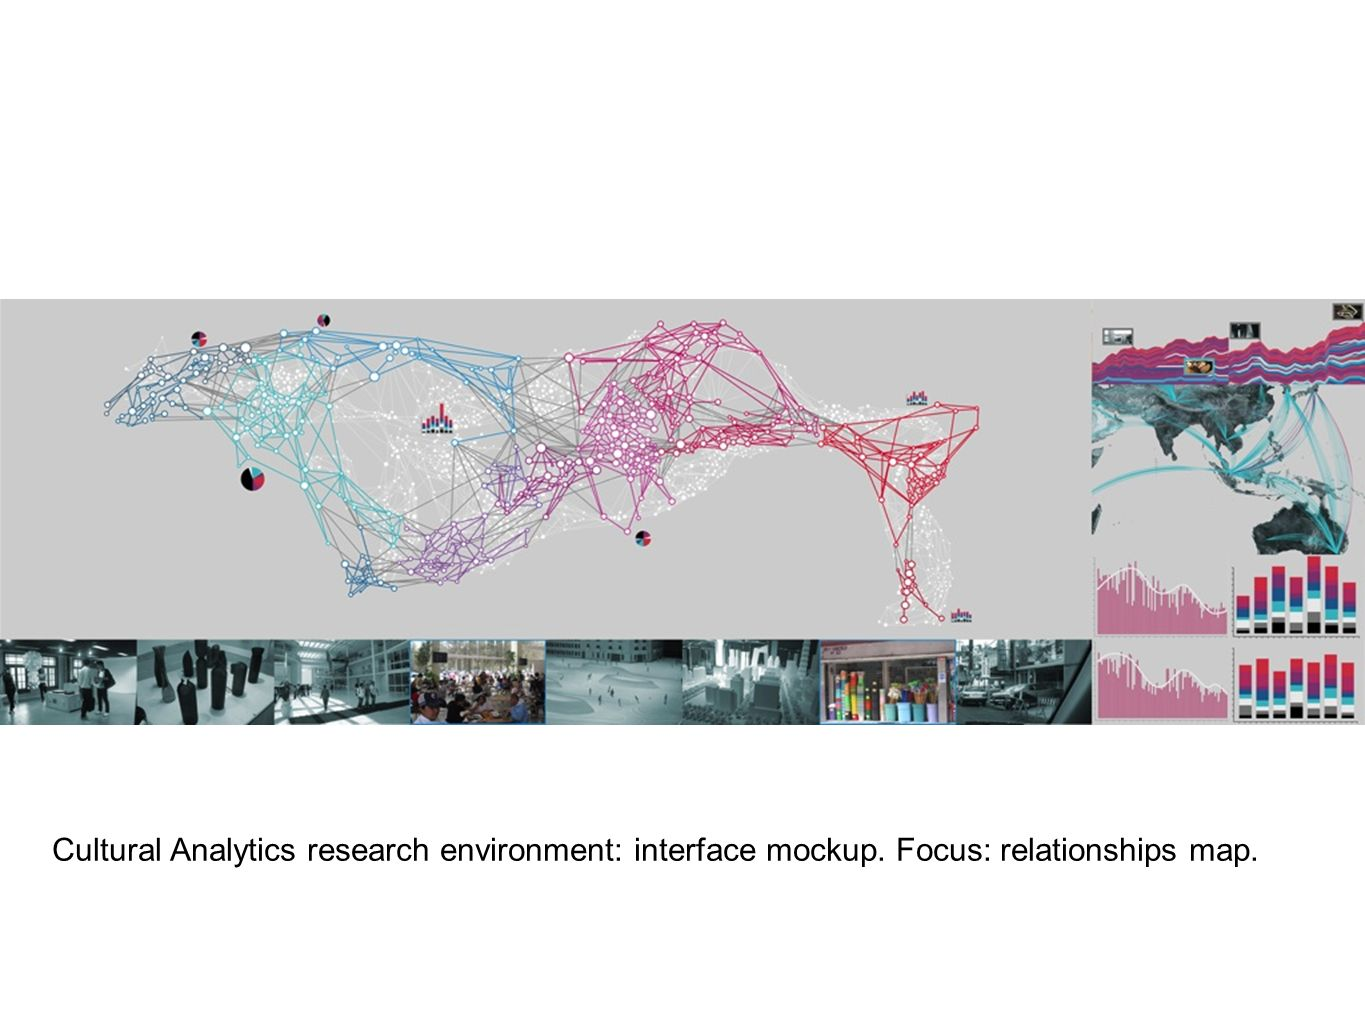 Cultural Analytics research environment: interface mockup. Focus: relationships map.